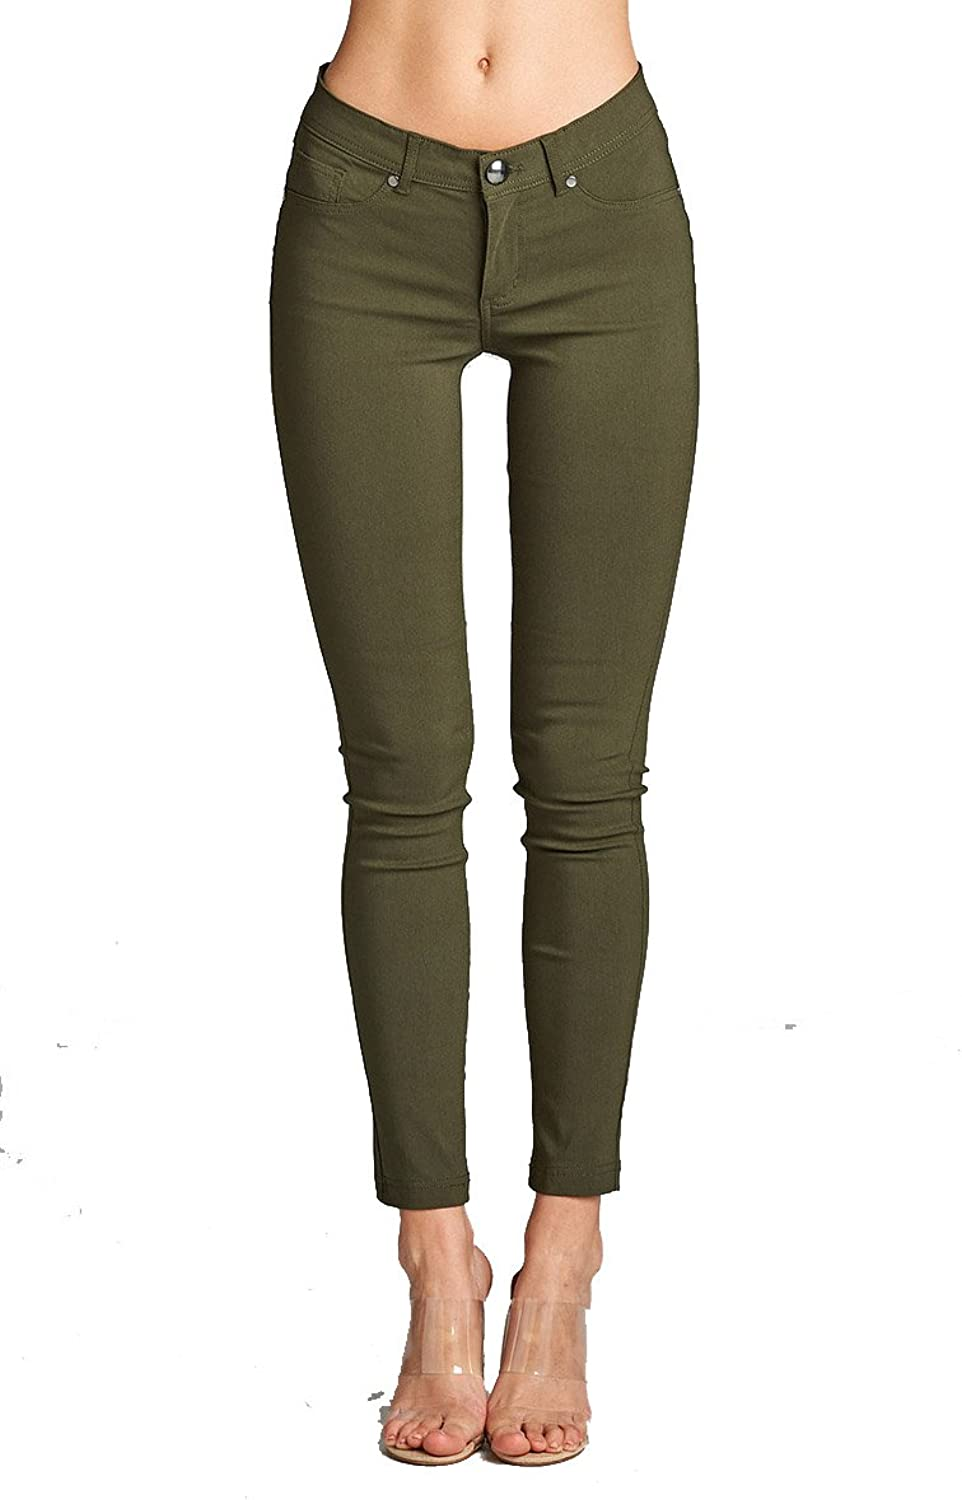 YourStyle Stretch Skinny Basic PantsUltra Stretch Comfy Pants